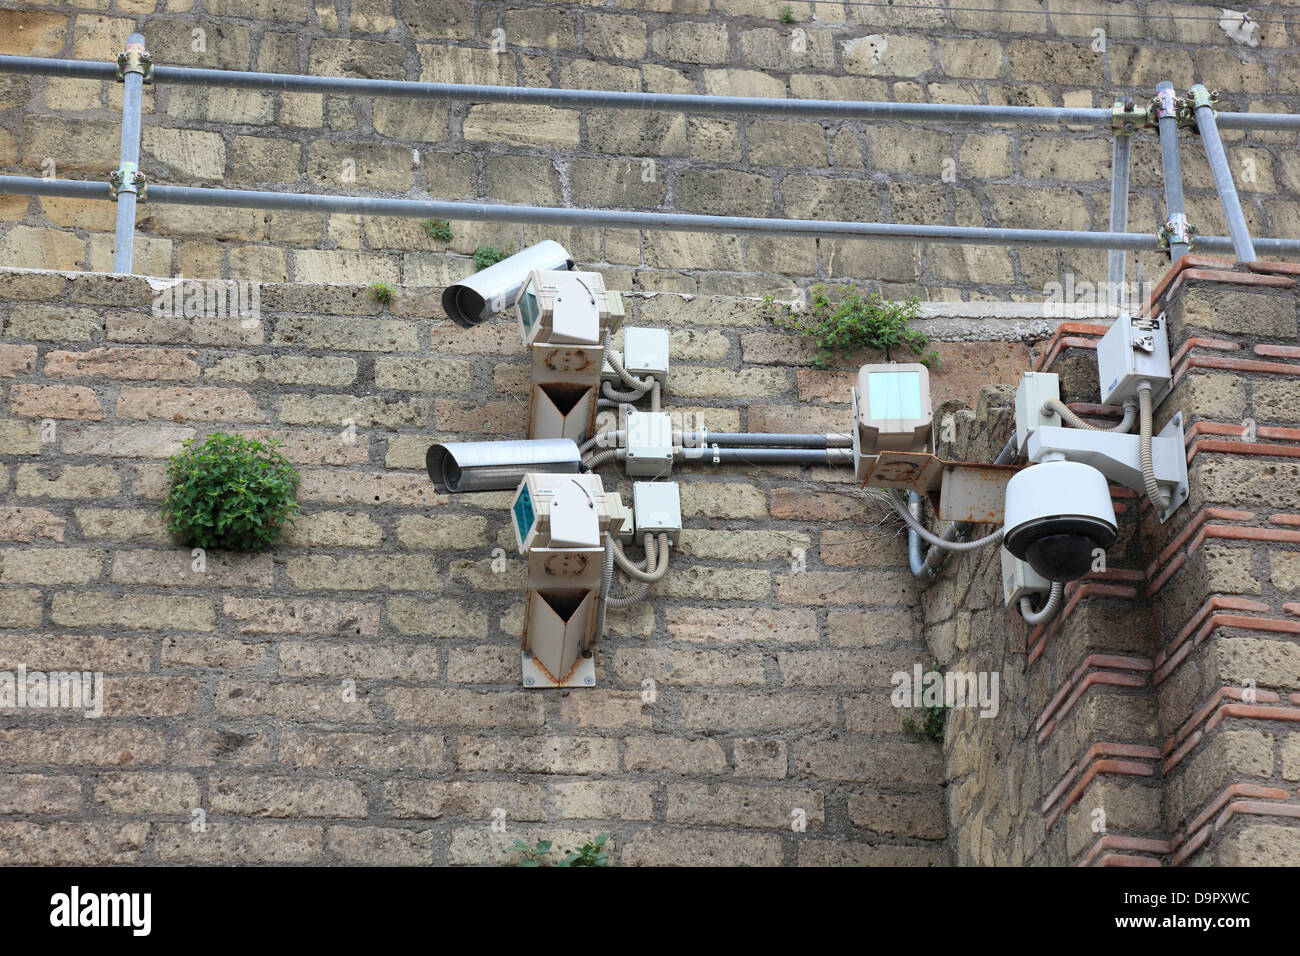 Surveillance cameras in the ruins of Herculaneum, Campania, Italy - Stock Image